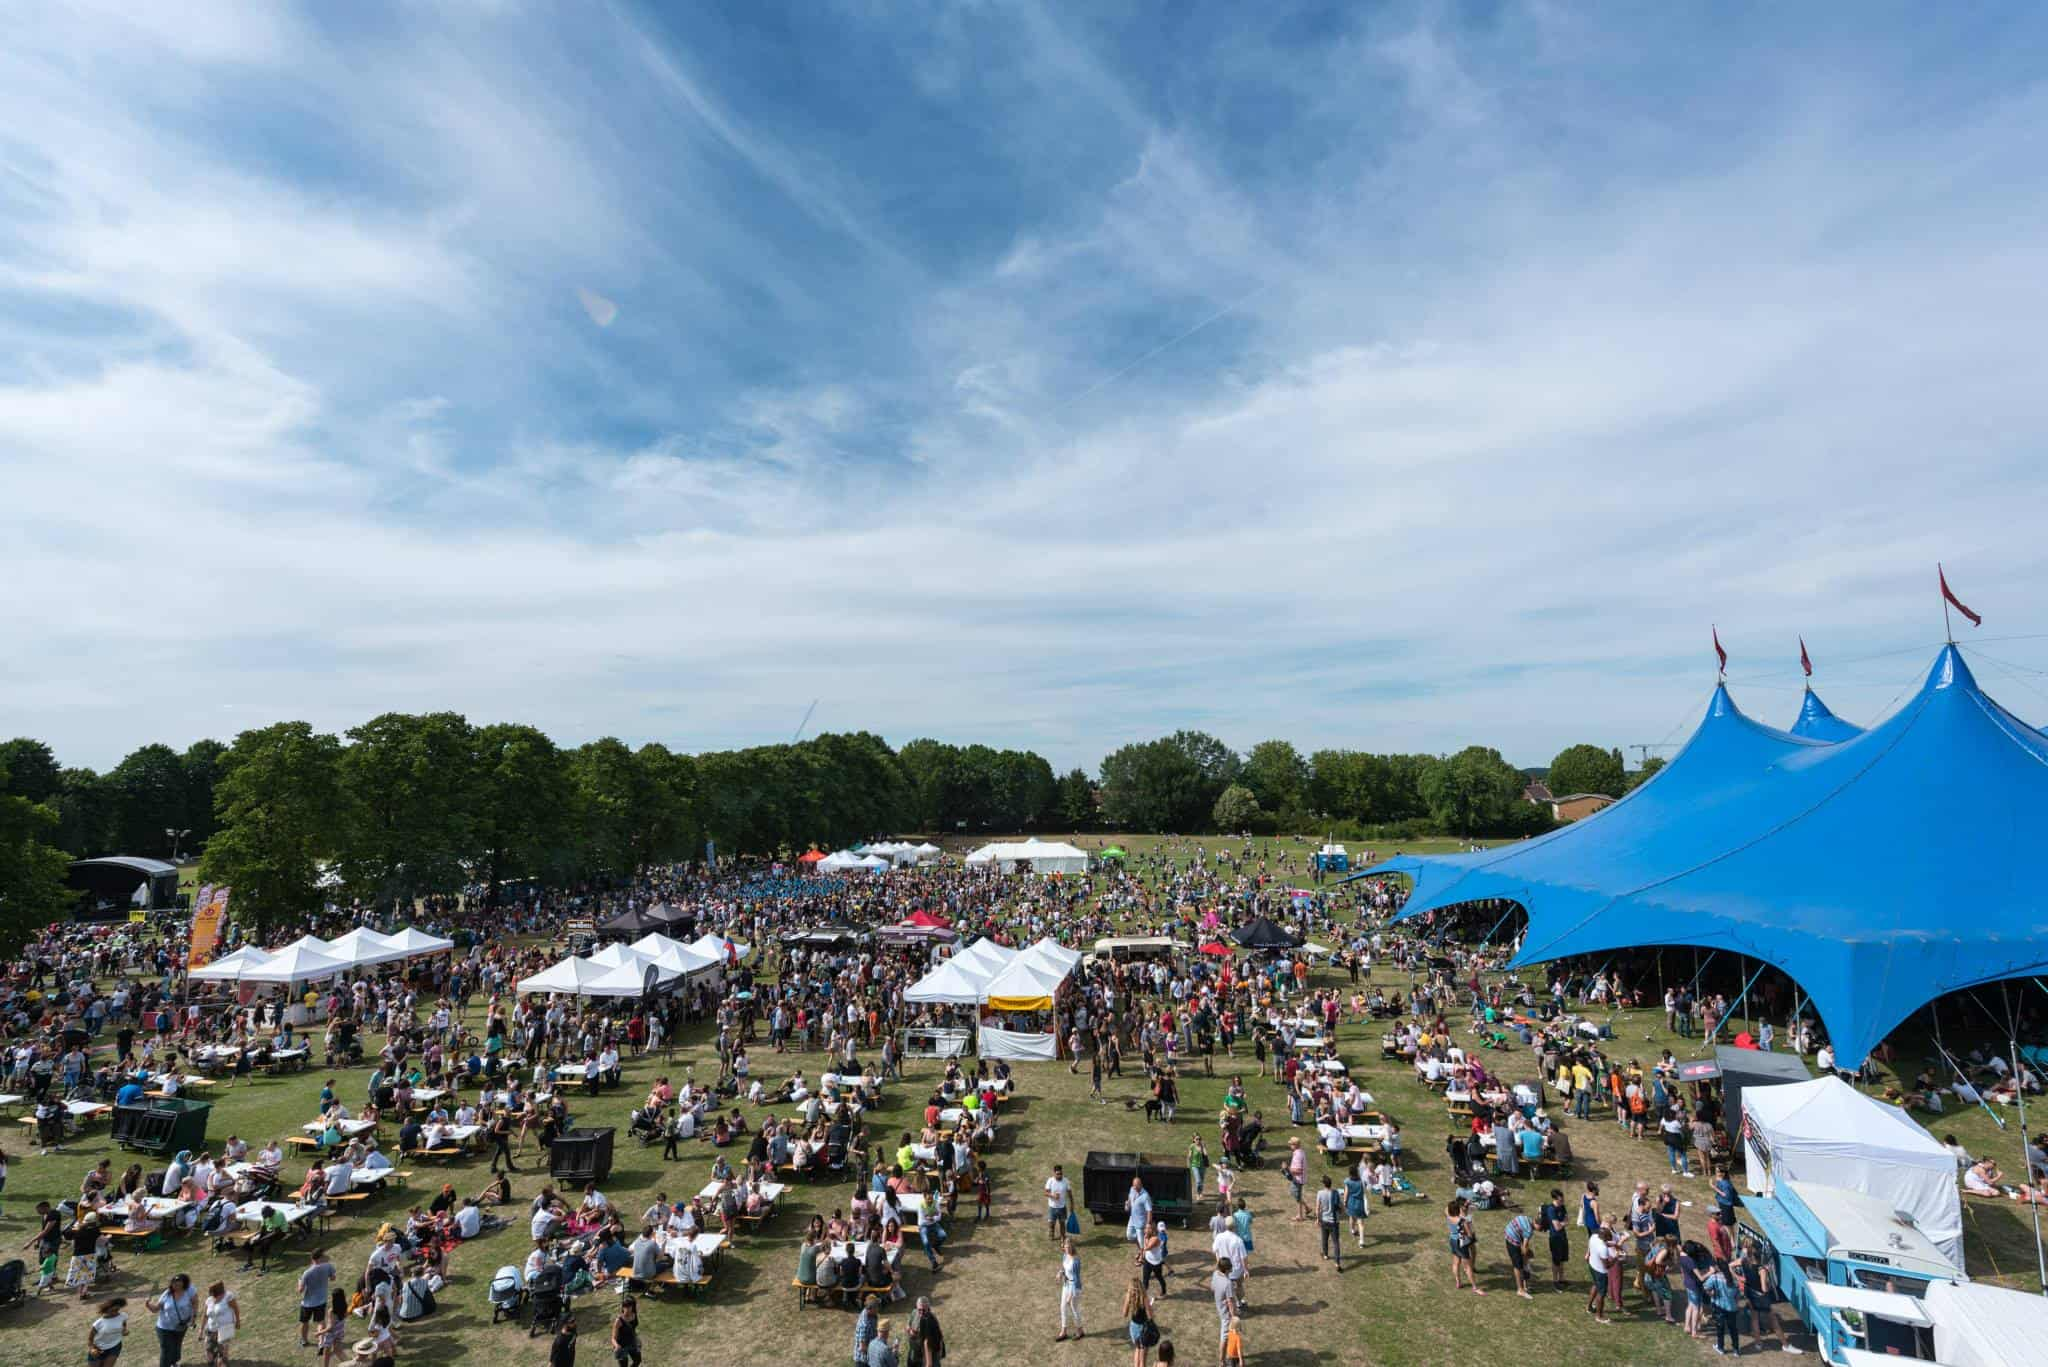 The Best Dog-friendly Festivals in London And Nearby - Walthamstow Garden Party